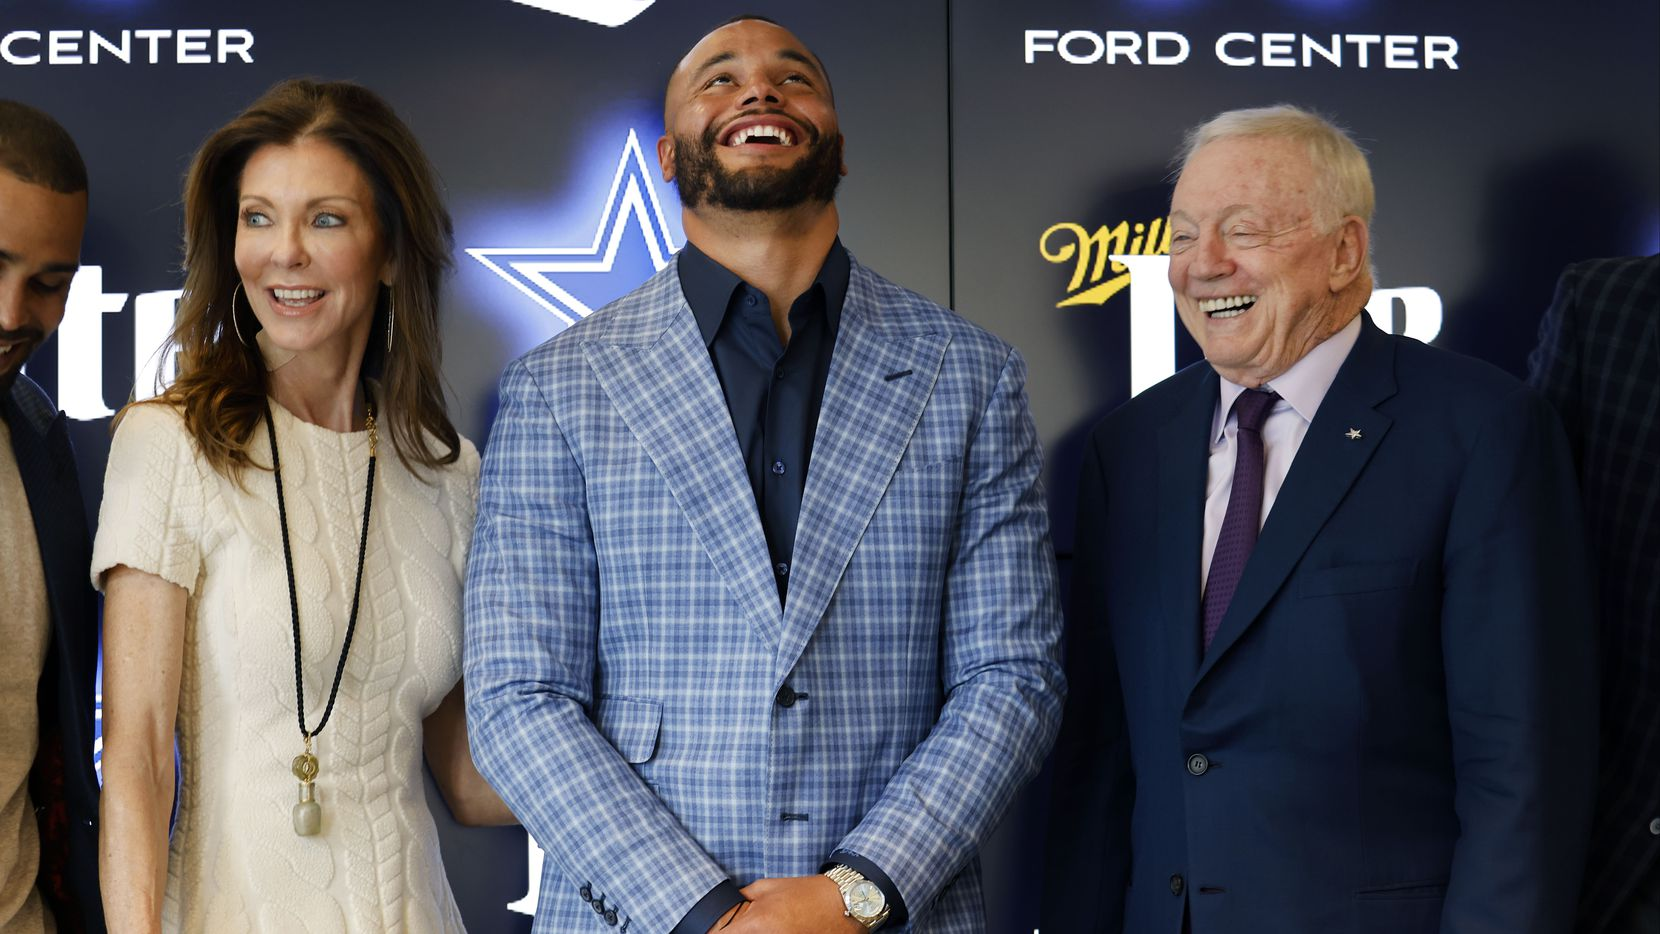 Dallas Cowboys quarterback Dak Prescott (center) laughs with owner Jerry Jones and Executive Vice President and Chief Brand Officer Charlotte Jones Anderson share a laugh as they posed for photos following a press conference at The Star in Frisco, Texas, Wednesday, March 10, 2021. Dak spoke about his freshly signed 4-year, $160 million contract with the team.